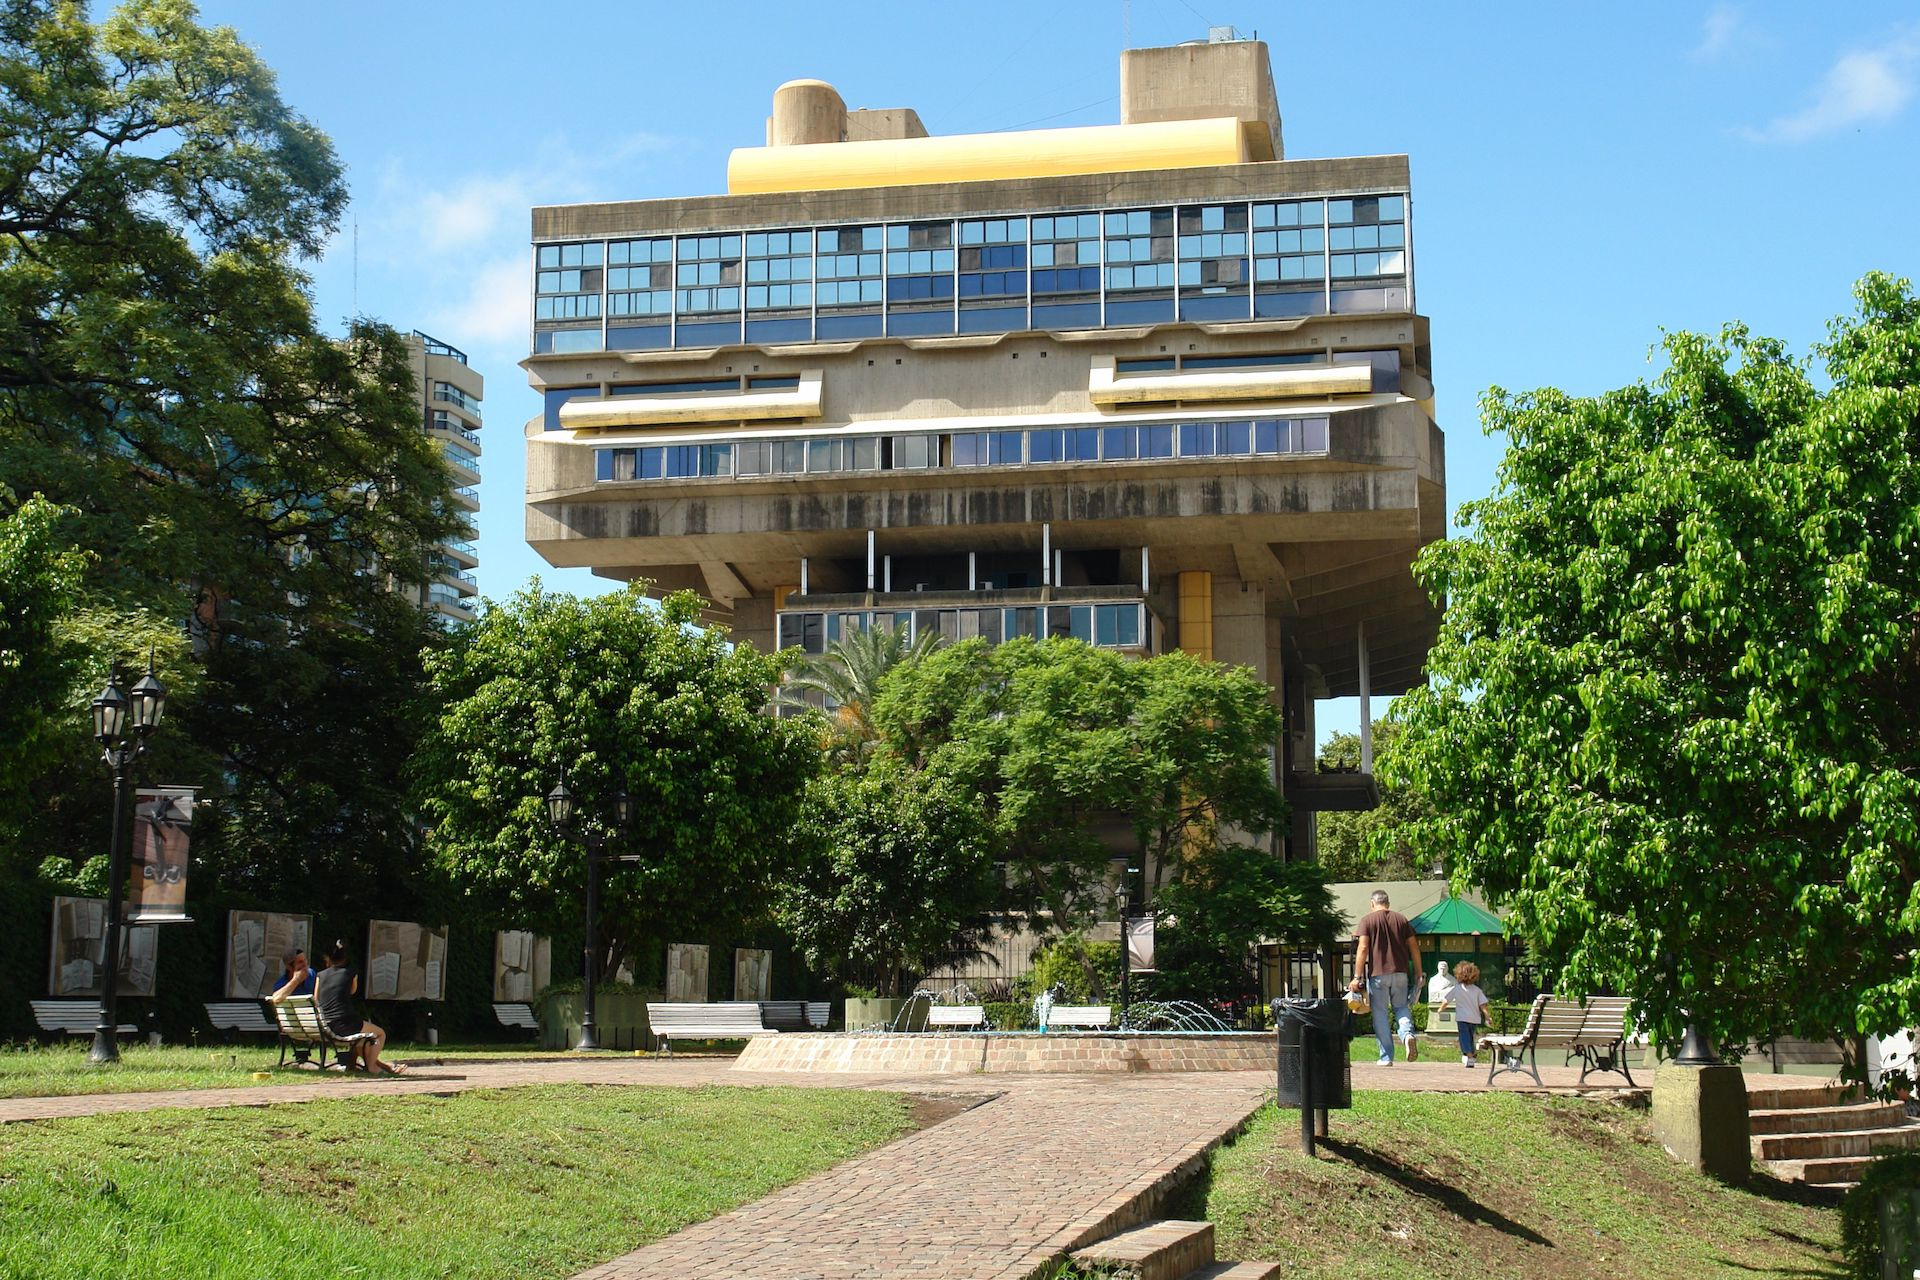 """This is the glorious brutalist National Library in Buenos Aires,"" Bottoni says, ""designed by Clorindo Testa. Many locals favor the grand European style buildings and find it plain ugly. For me, it's something else: a peaceful study place with one of the best river views of the city—and open for everyone. I always enjoyed my hours spent there overlooking the river."" Photo © 	Evelyn Proimos via Flickr"